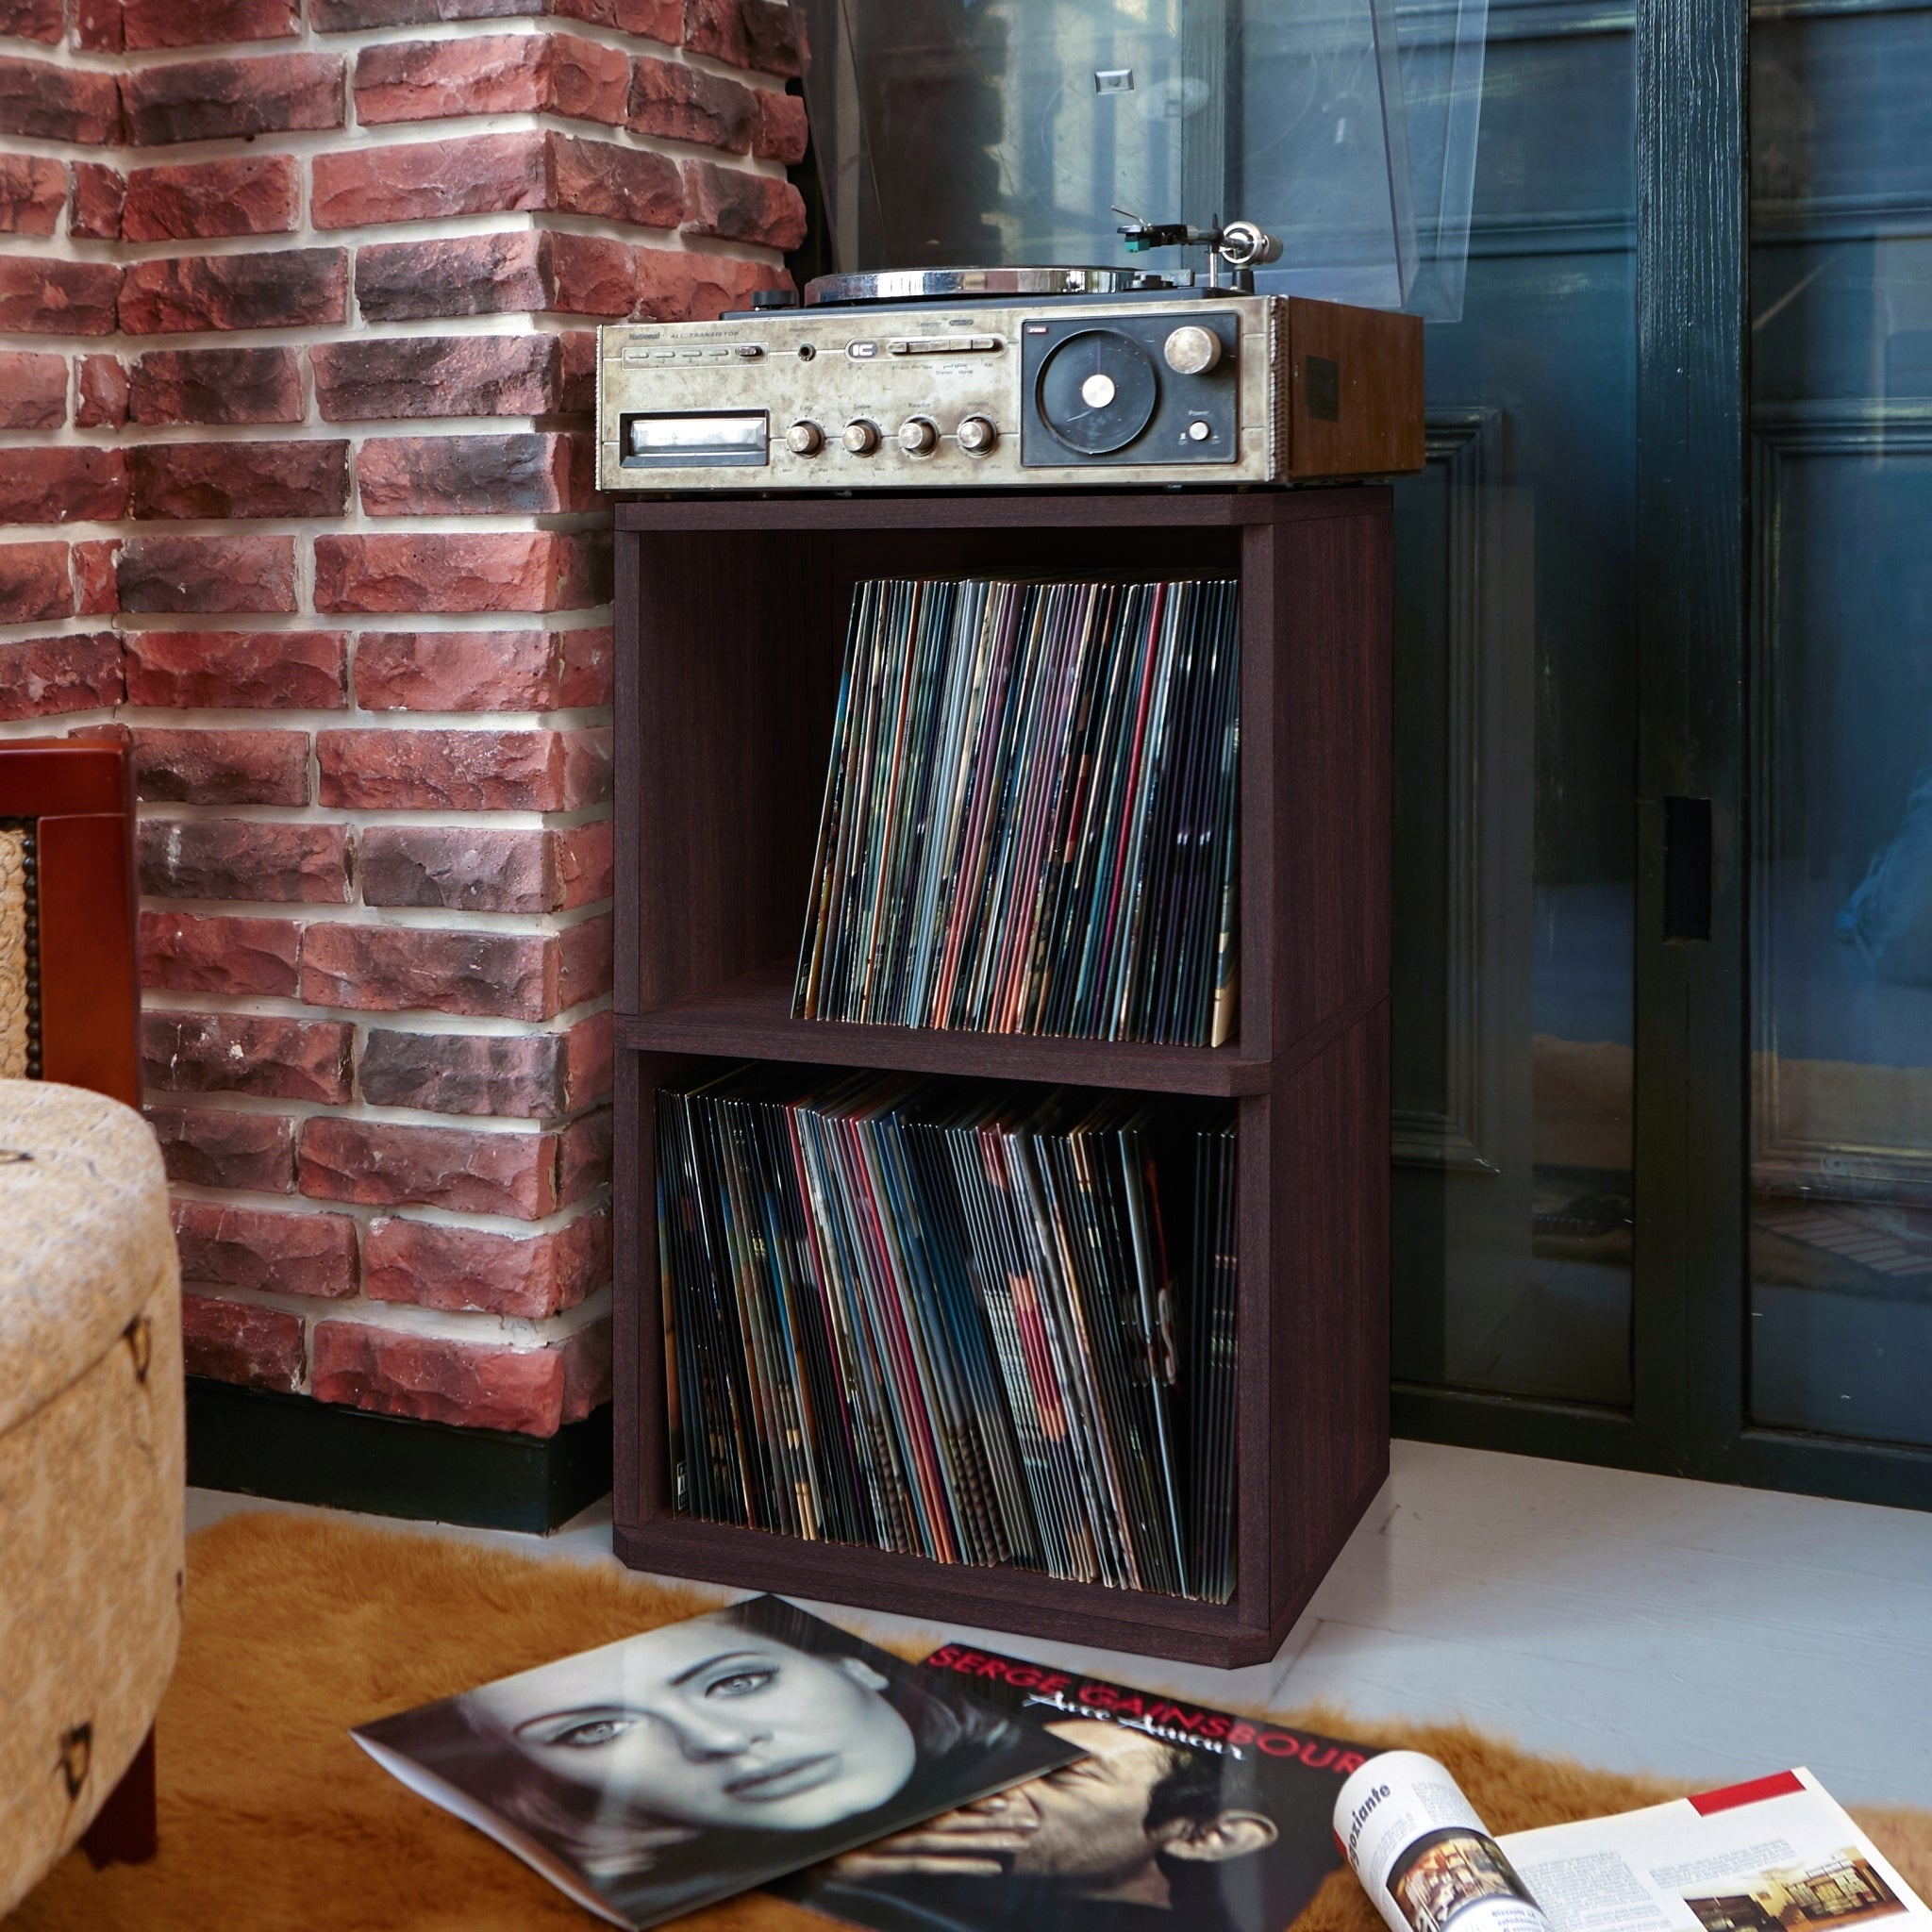 store storage view outfitters fit shelf record shop e corner qlt redesign slide hei zoom rack constrain vinyl urban